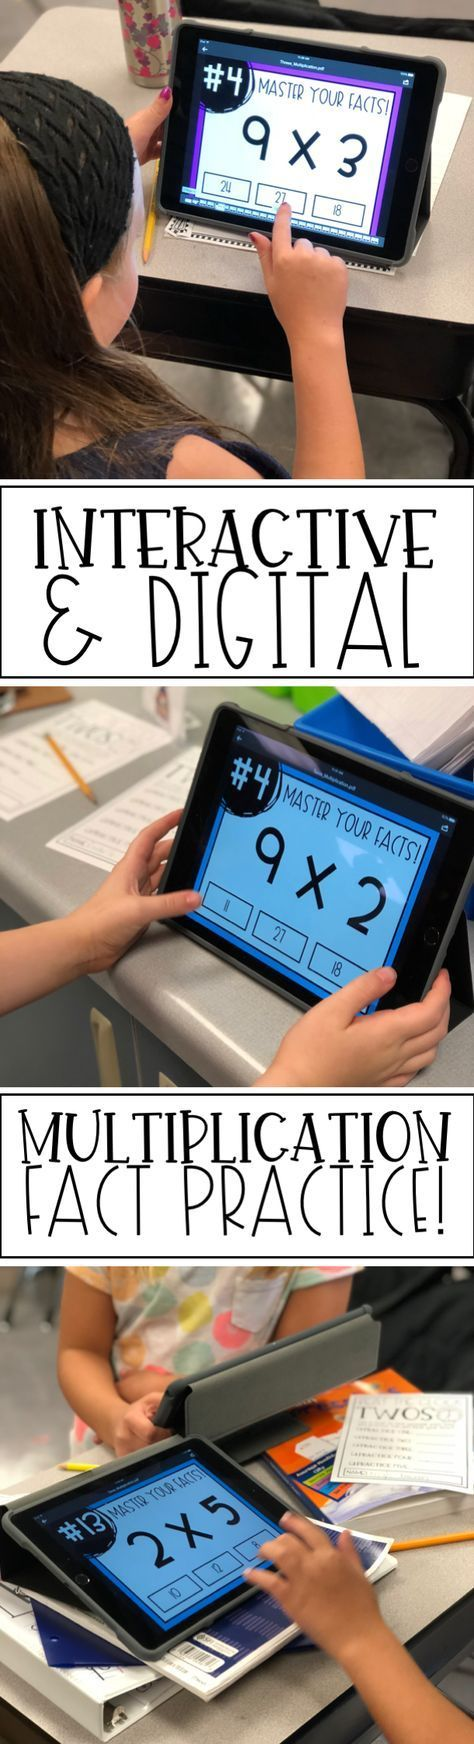 Engaging and easy multiplication fact practice! Just upload onto your device and students can use it to practice independently or in center/station rotations! #mathpracticegames